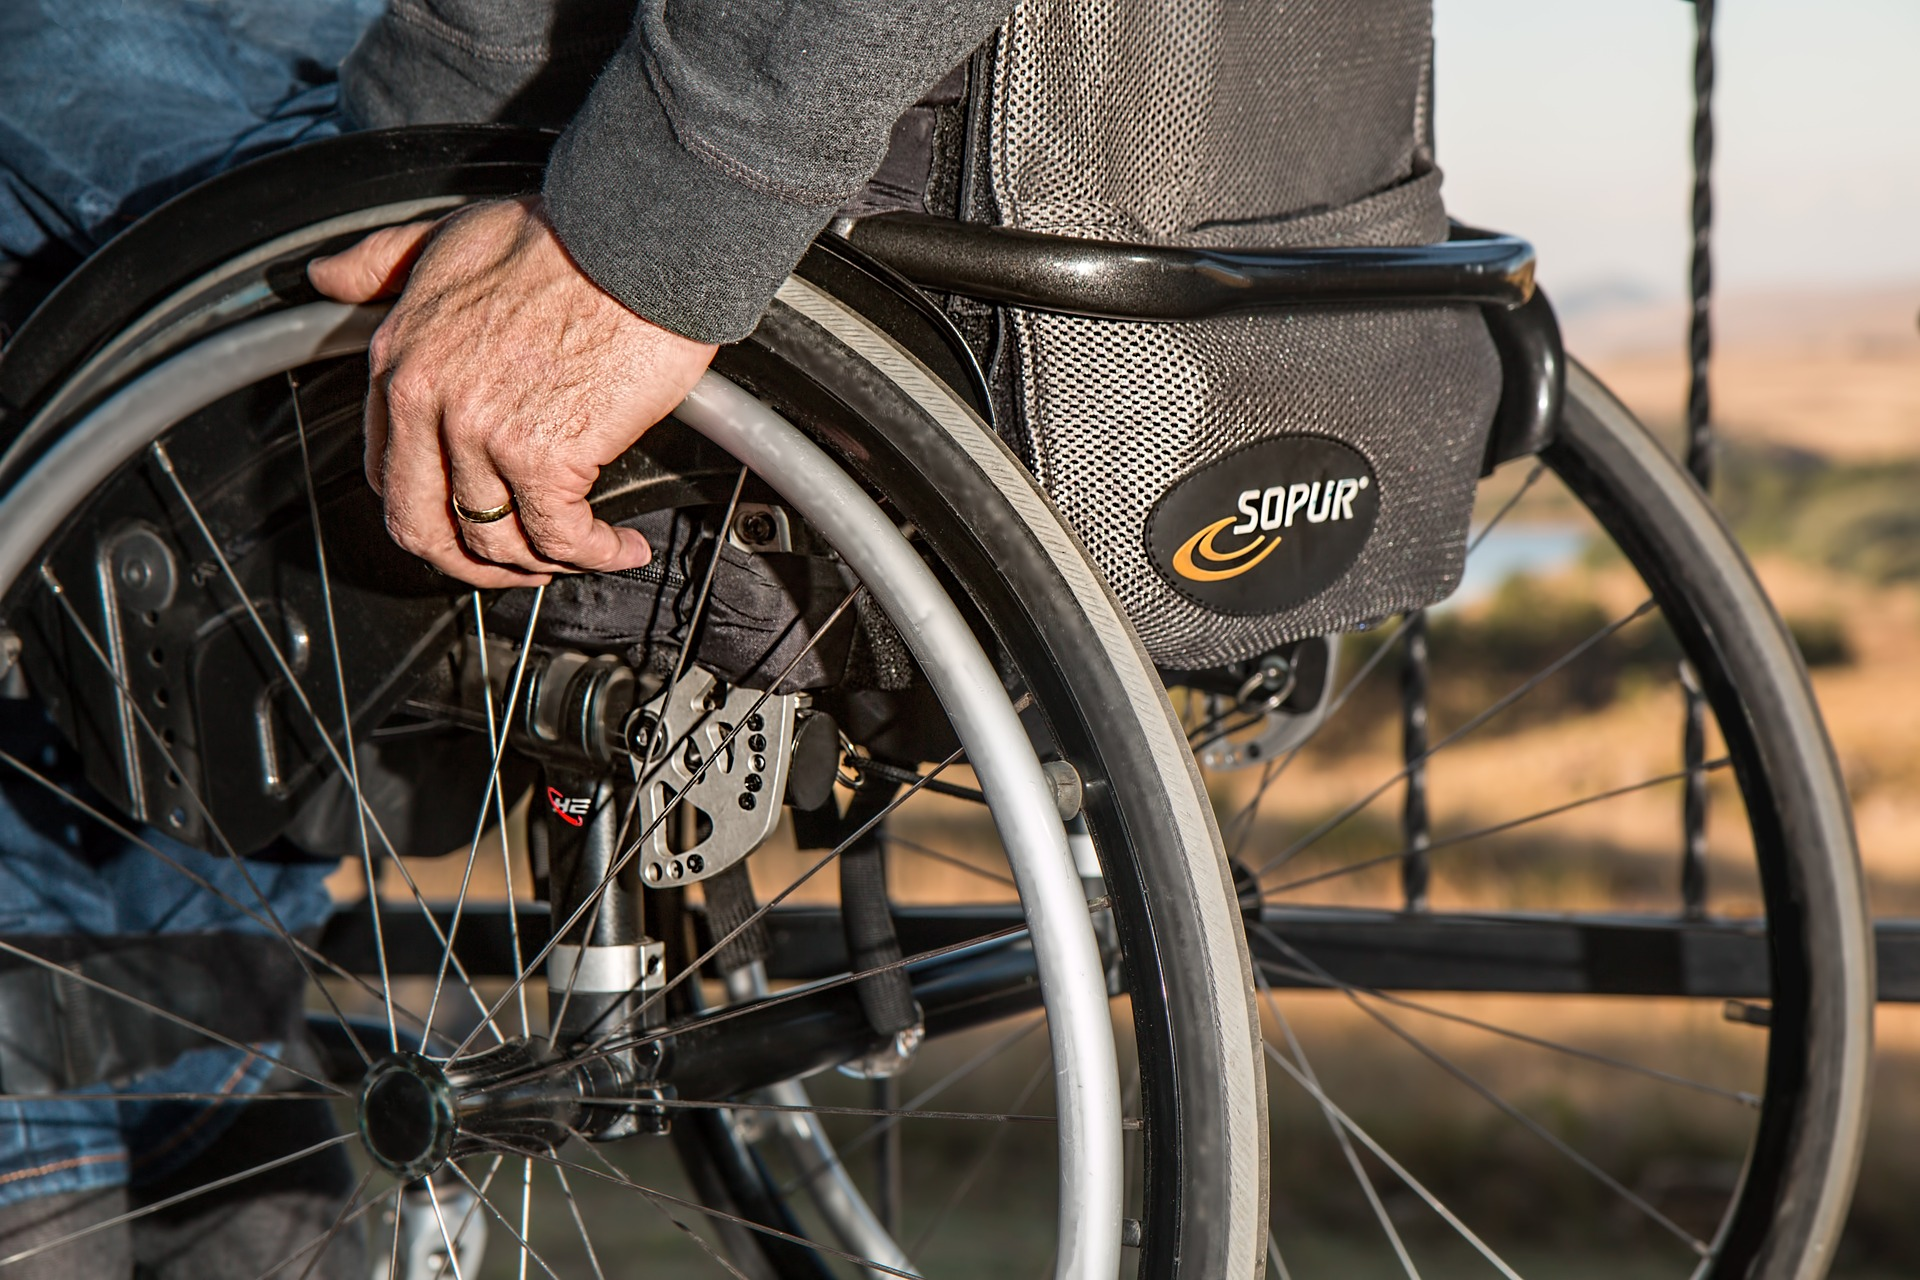 The danger of a pressure ulcer for wheelchair users